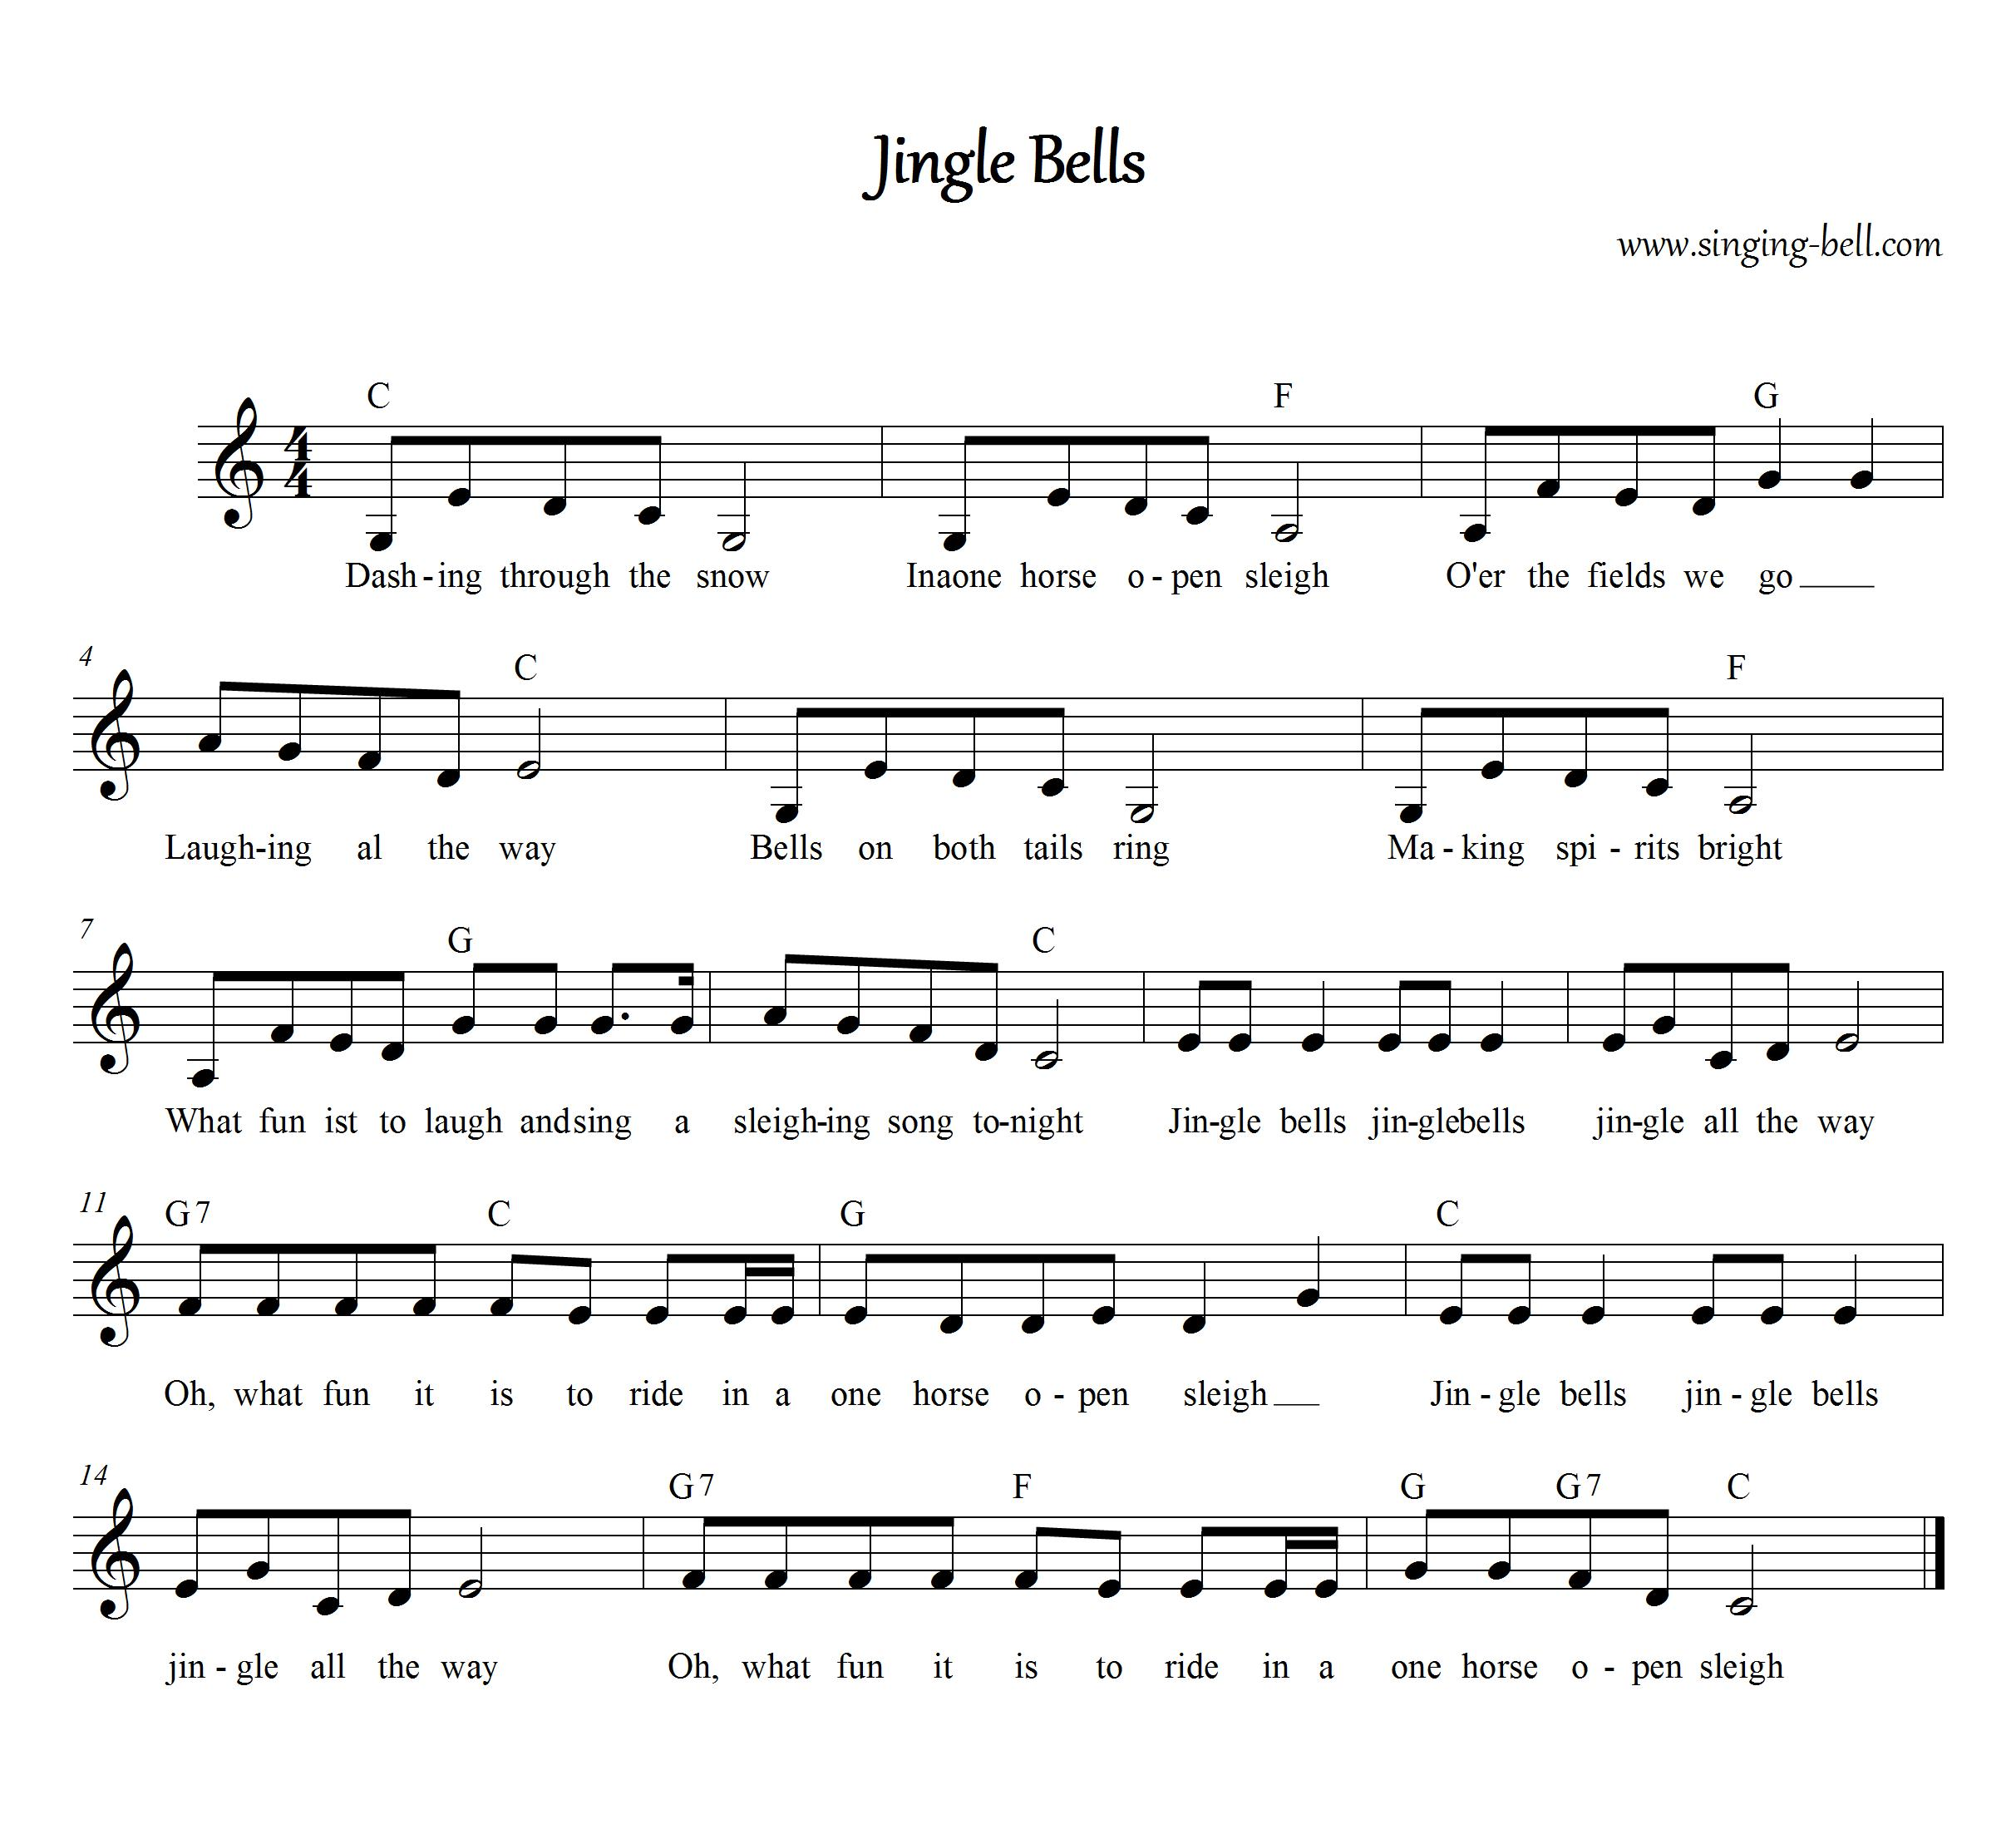 image relating to Jingle Bells Lyrics Printable identified as Jingle Bells Cost-free Karaoke Xmas Carols for Youngsters